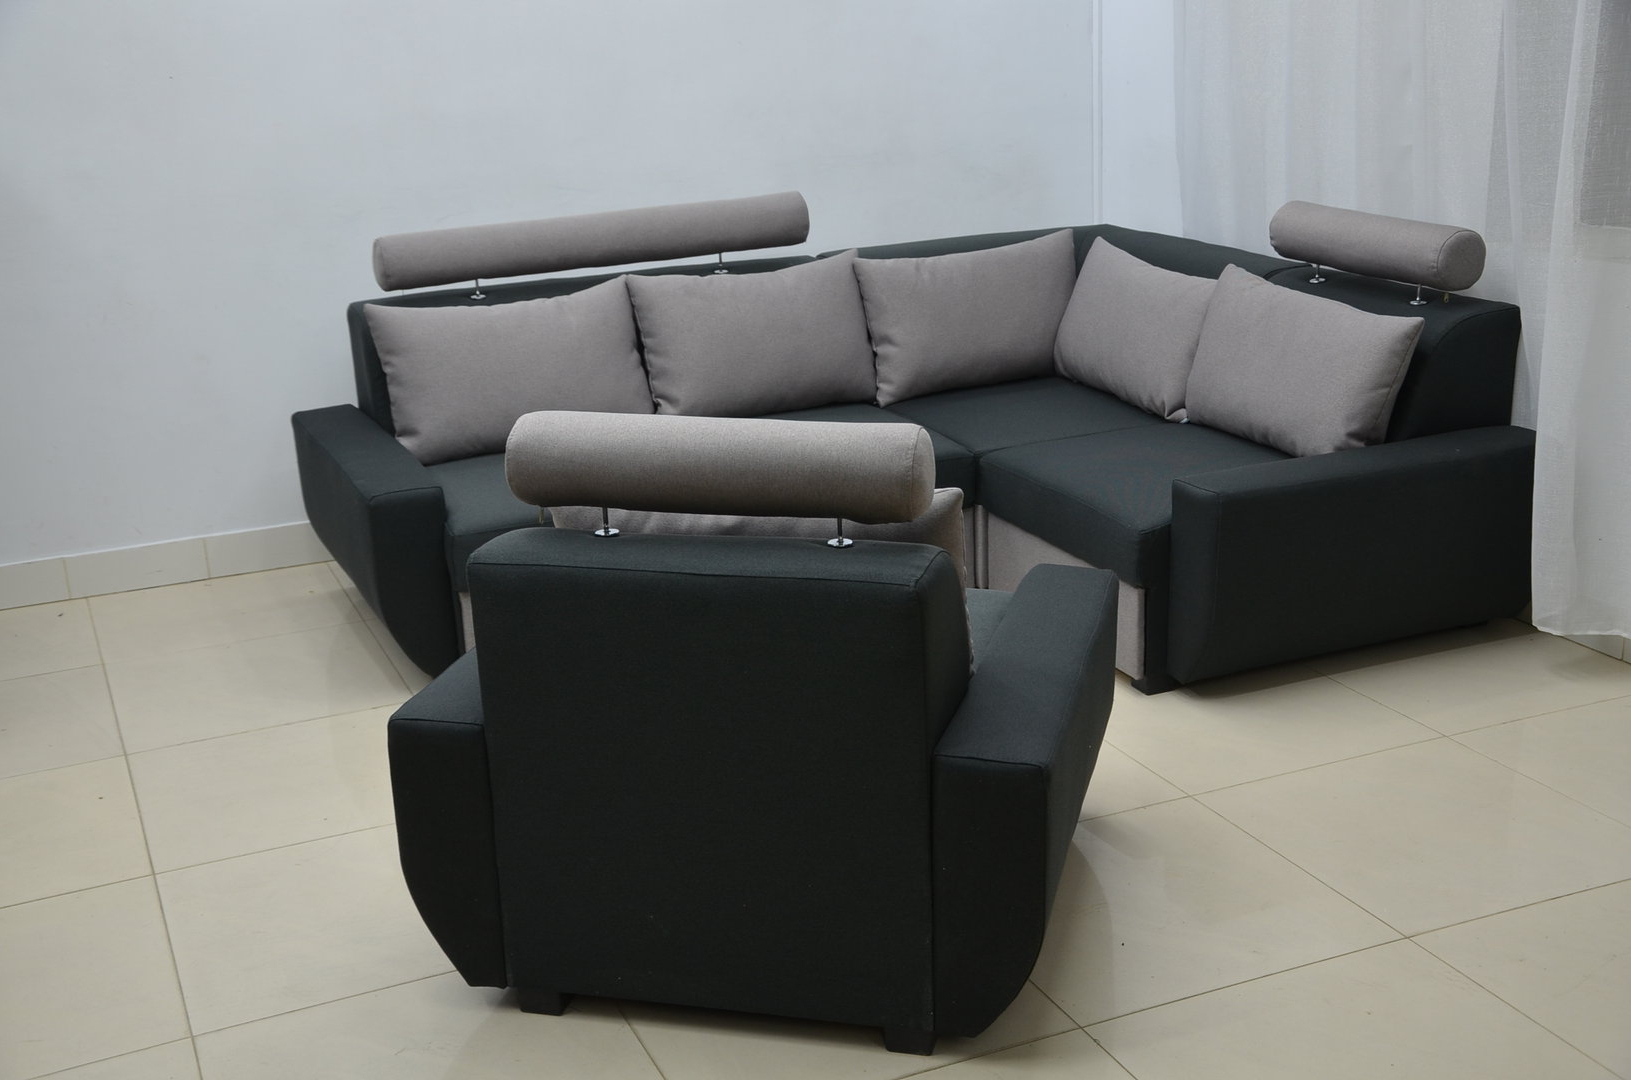 Most Popular Single Chair Sofa Bed Throughout Corner Sofa Bed Mood With Single Chair, Twill Black / Grey (Gallery 17 of 20)